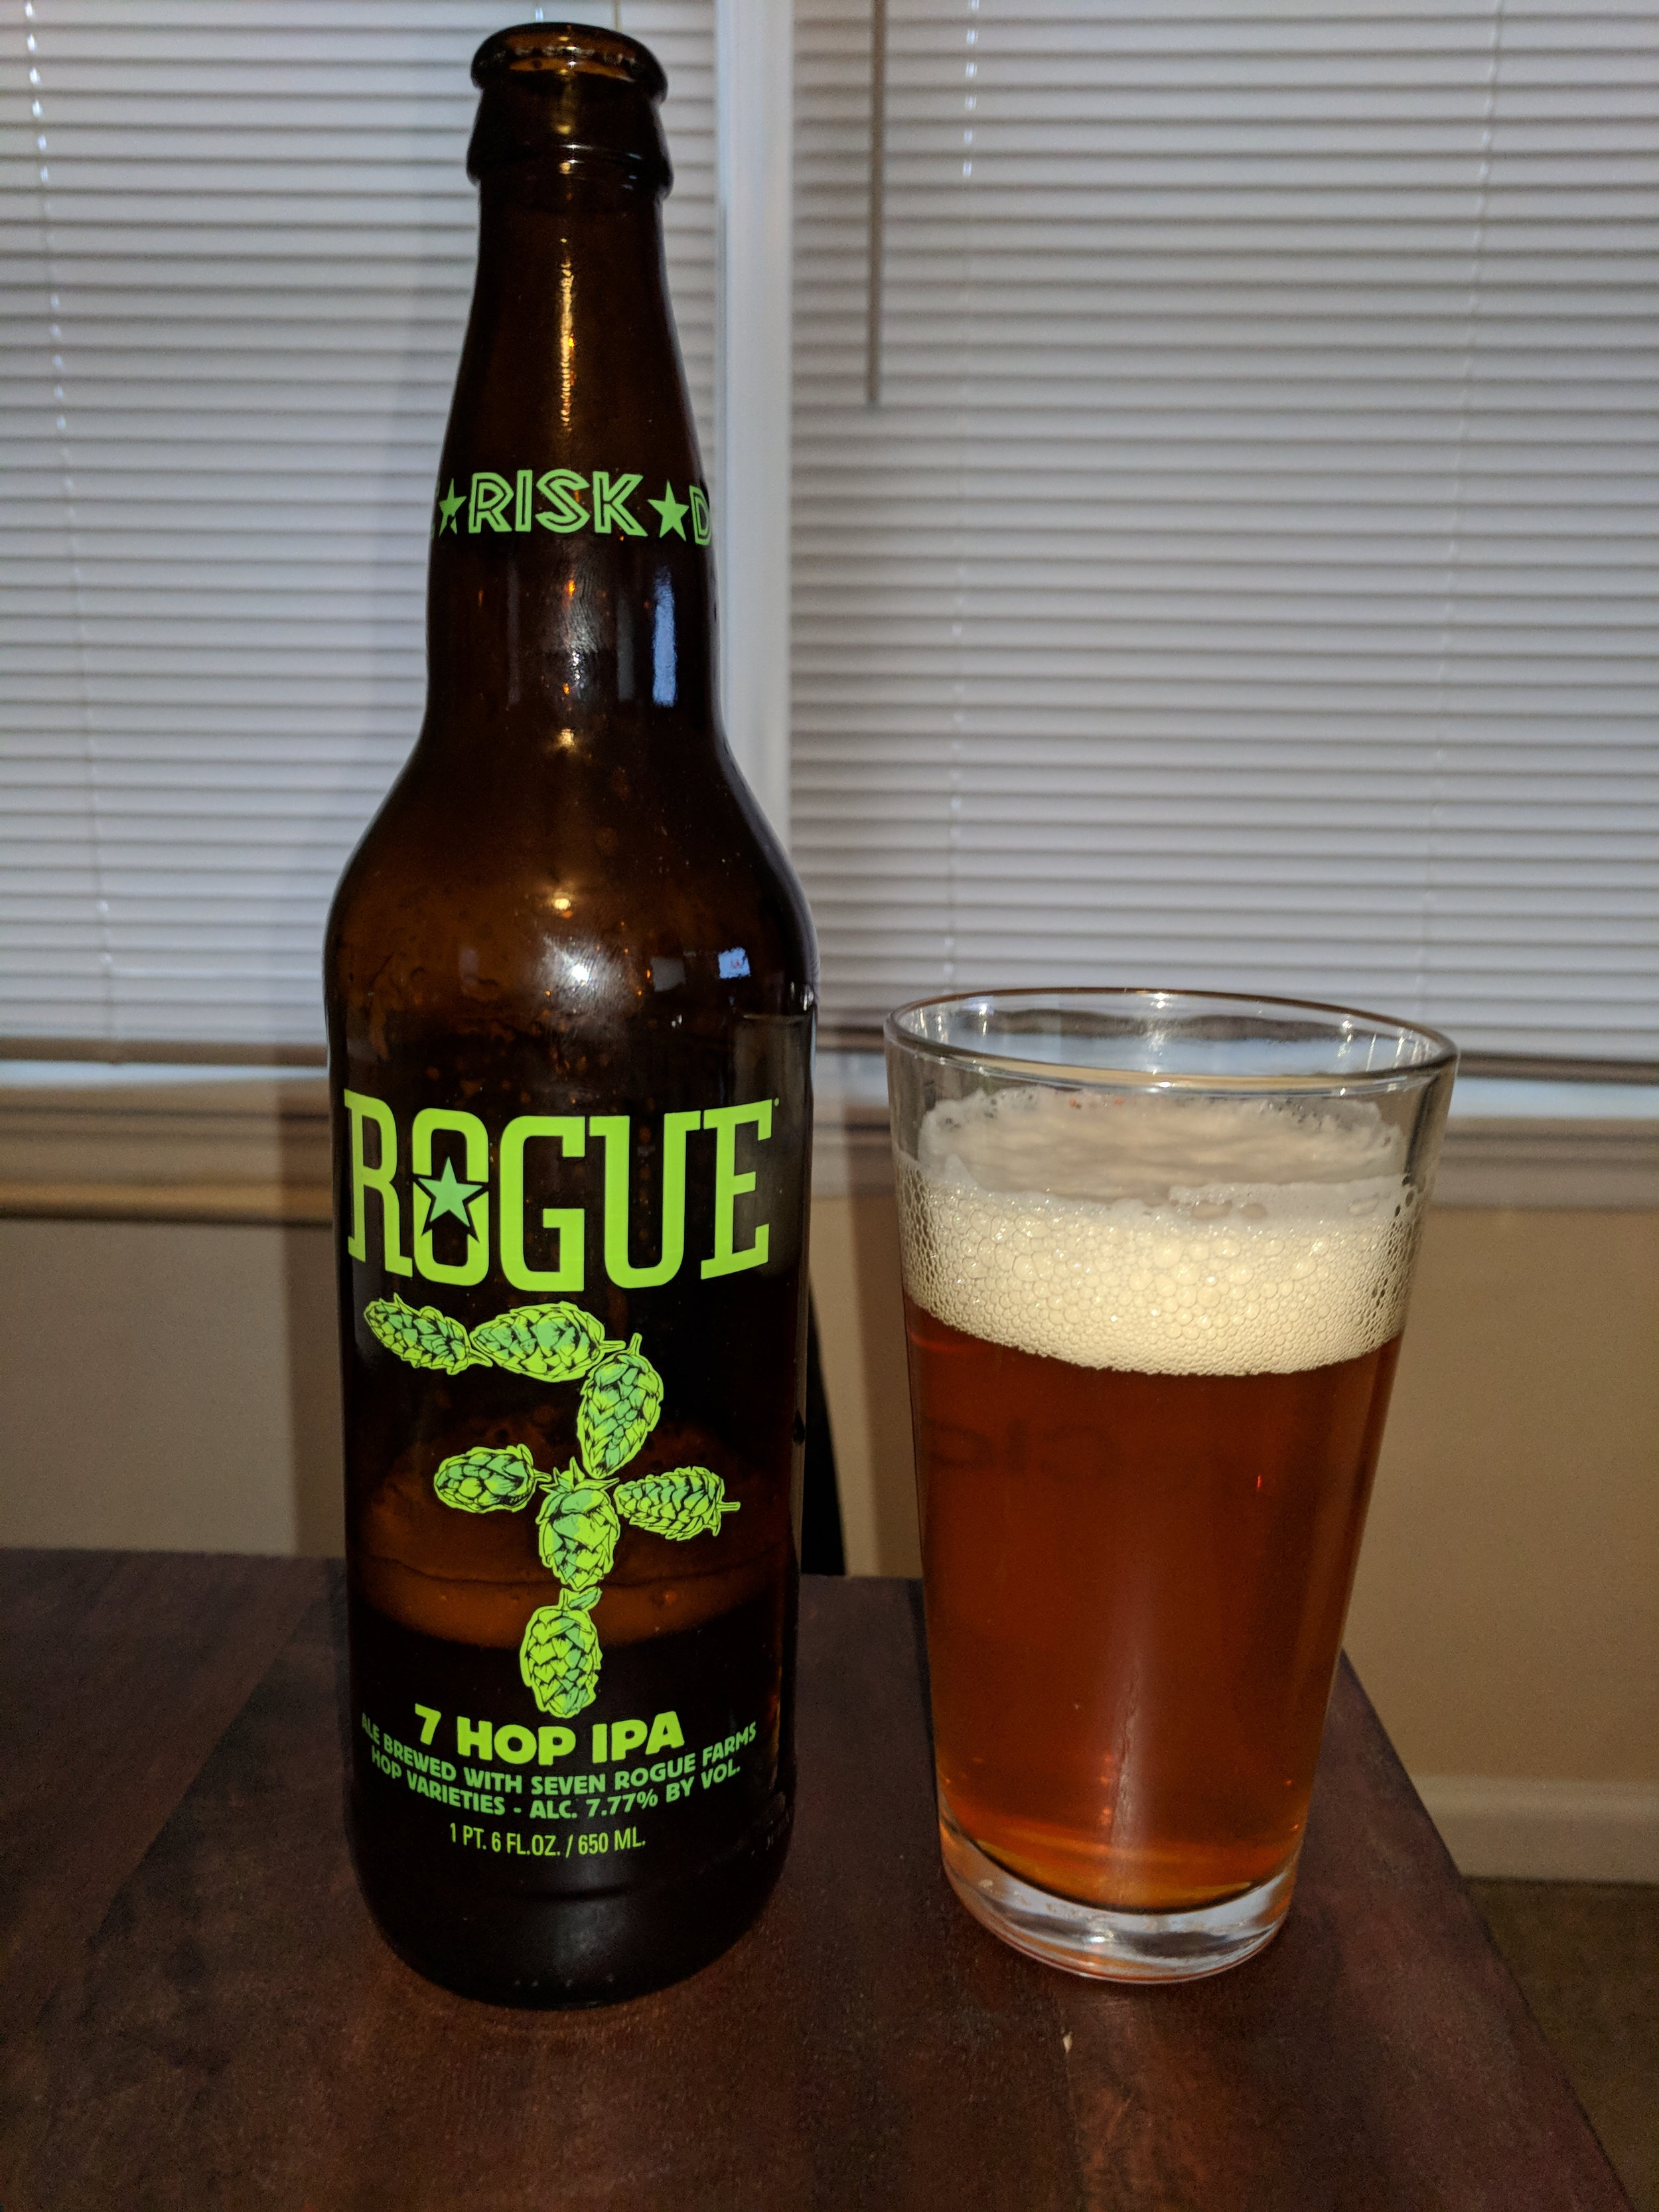 7 Hop IPA - Rogue Brewing Company makes many great IPAs, and we tasted this one on Episode 19.  Their 7 Hop IPA is a decent example, particularly with 7 different types of hops!  This gives the beer a robust flavor profile that is hop forward.  Surprisingly though, the bitterness is kept at bay compared to other beers that have this hop profile.  It has some definitive malty characteristics, as you can see from the impressive head.  I would say this is a very standard IPA, that may be a bit forward in hop flavor/aroma, but the bitterness reminds both Nick and I of a session IPA.  Dylan and Scott both could drink it, but still not one of their favorites.